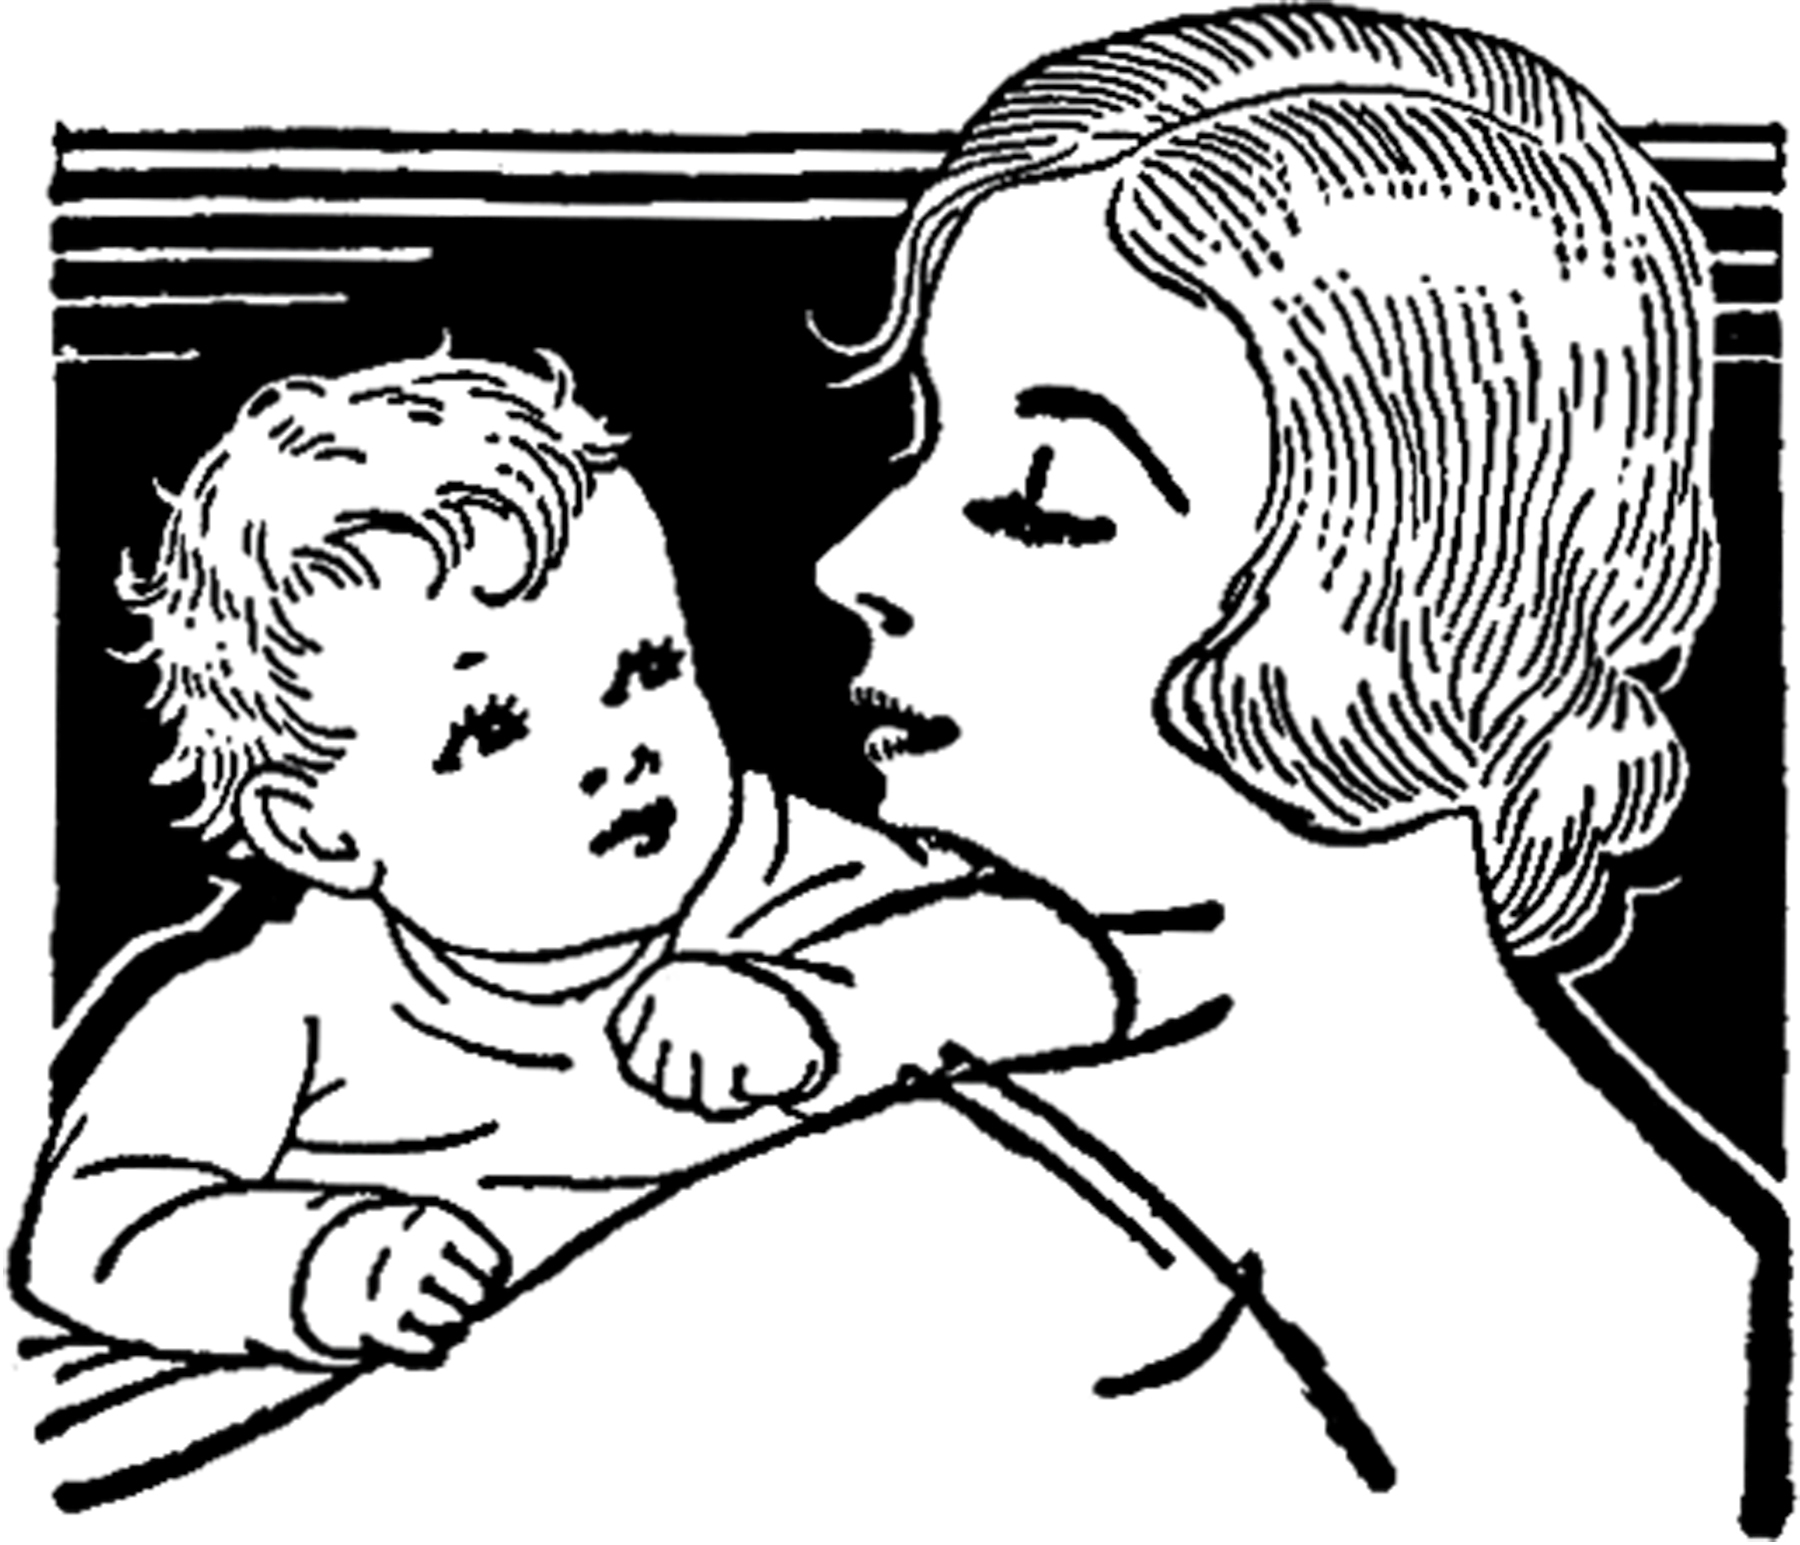 illustrations the graphics. Free black and white clipart mother and child